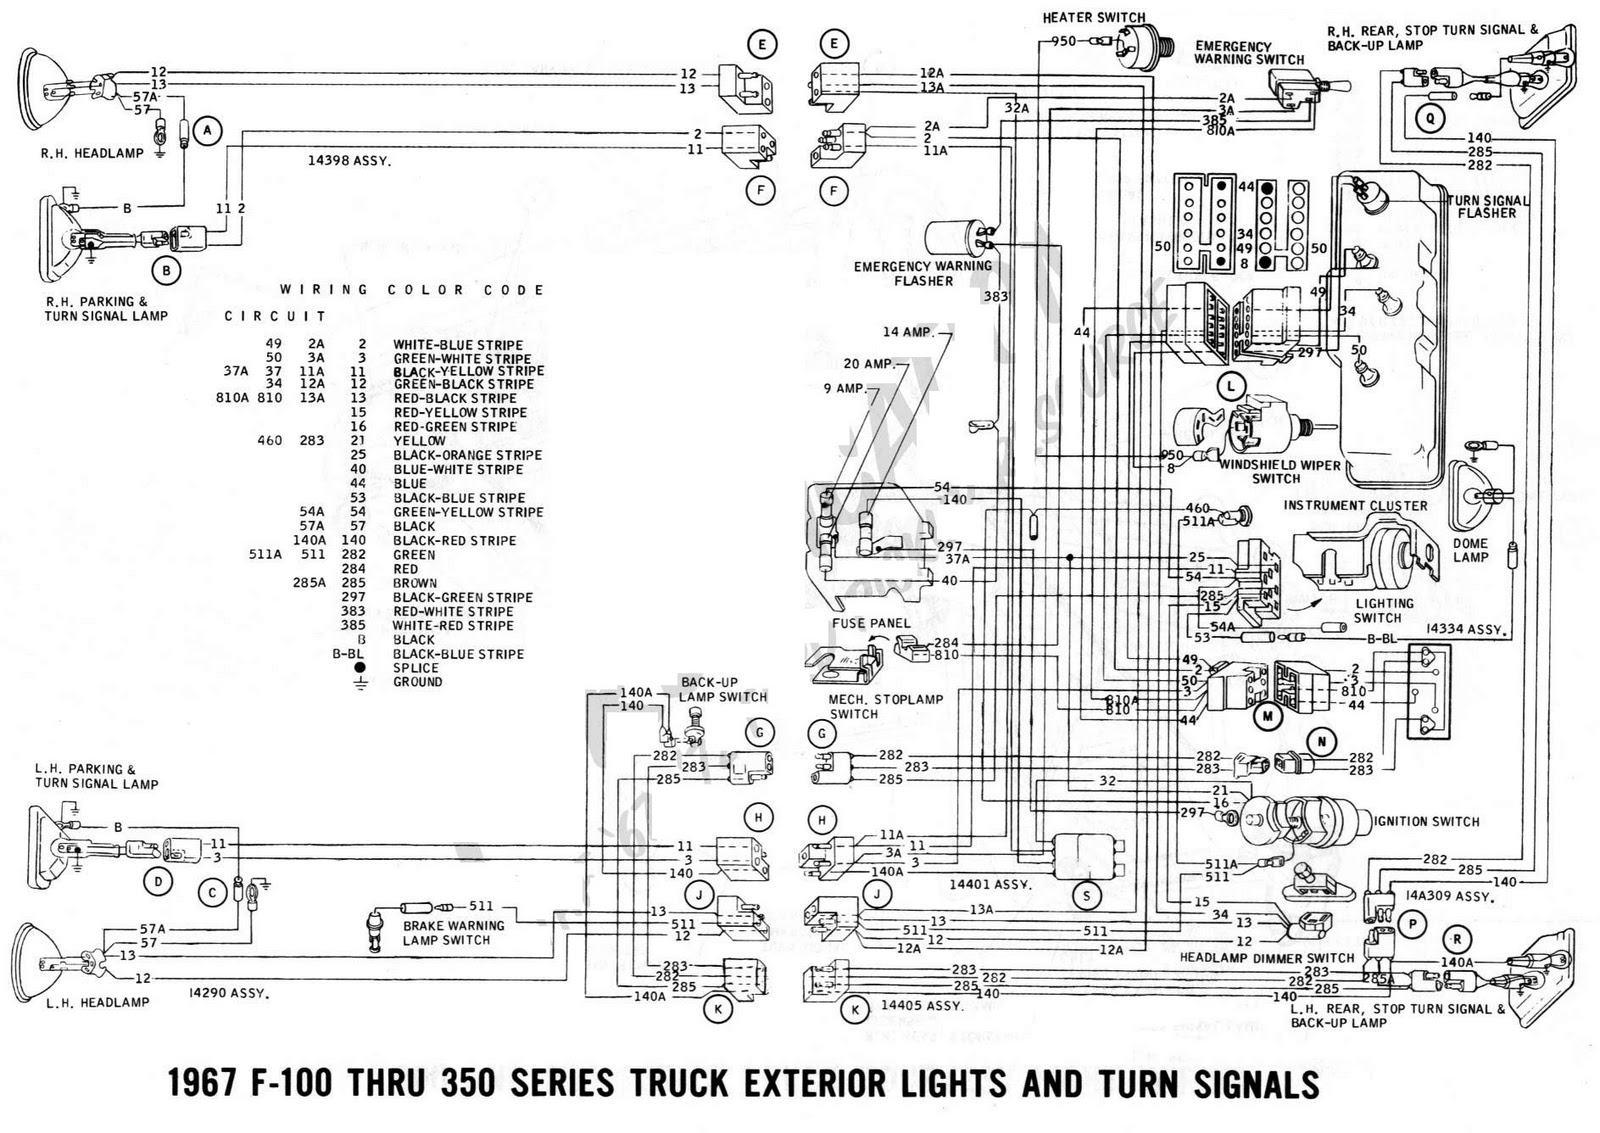 1977 ford f150 ignition switch wiring diagram on 1977 images free Ignition Switch Diagram 1977 ford f150 ignition switch wiring diagram 6 dodge ignition switch wiring diagram ford f150 ignition switch replacement diagram ignition switch diagram